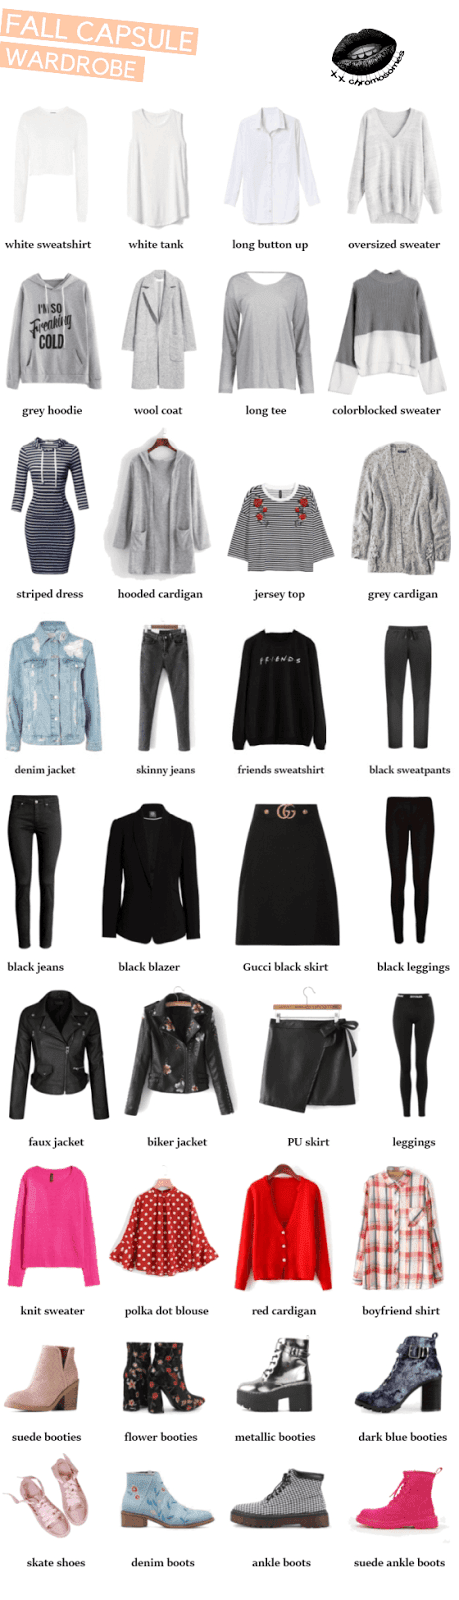 Our Capsule Wardrobe - Fall - 2017